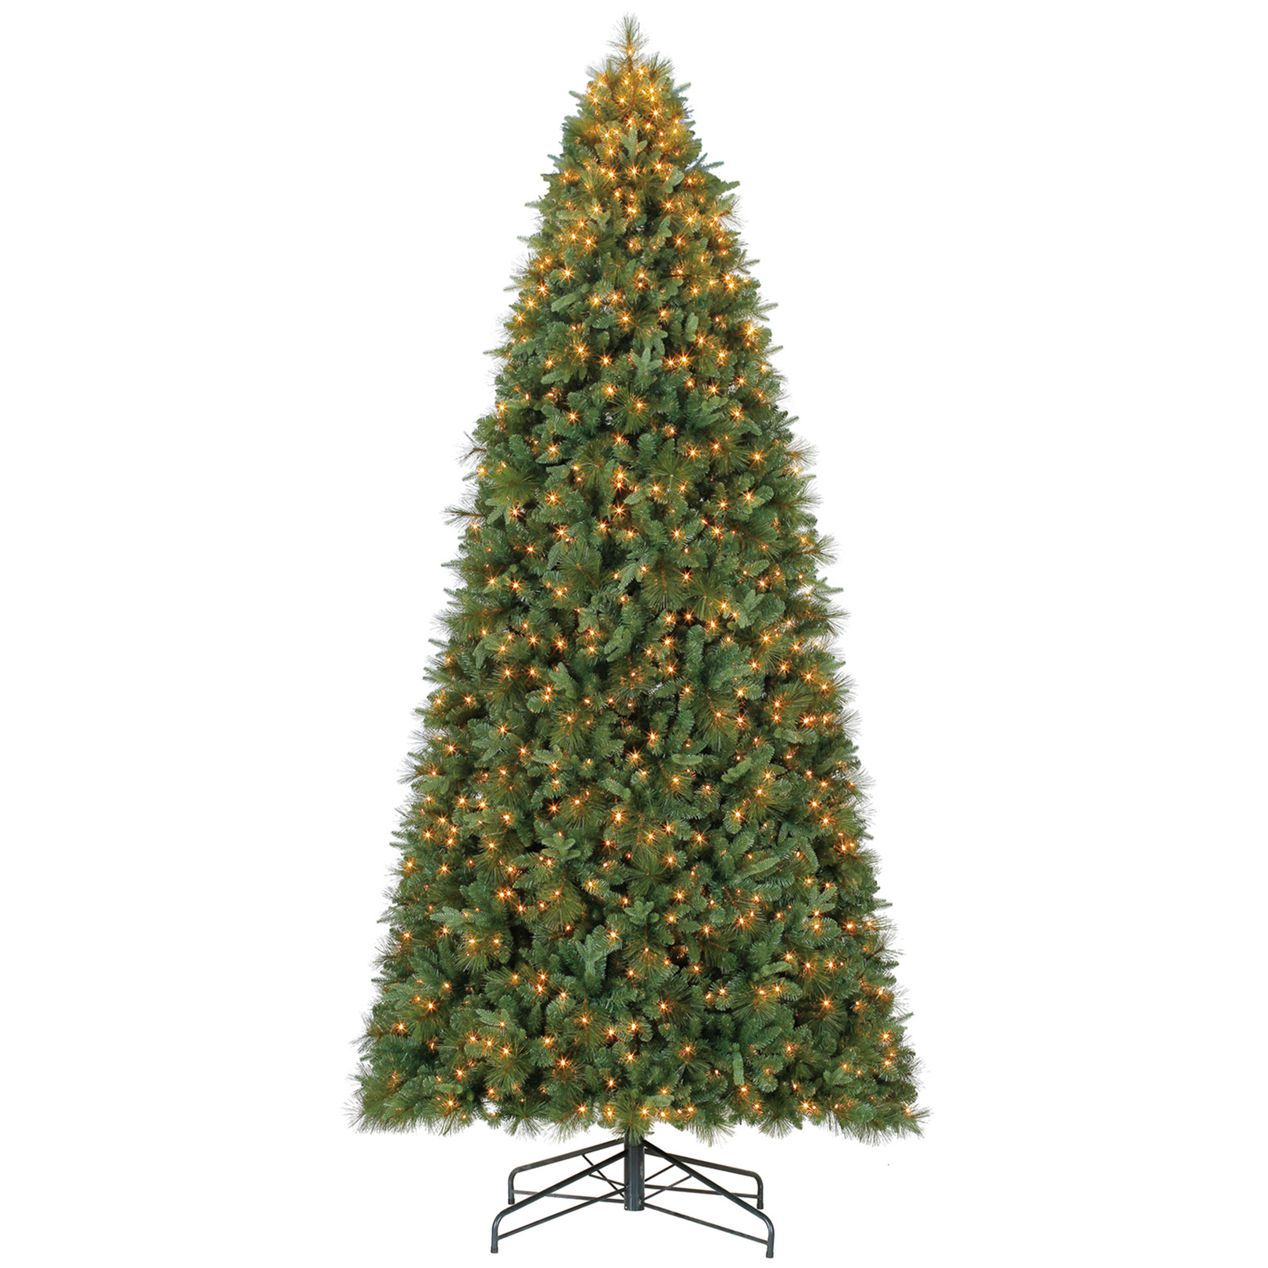 C31 12 Ft Pre Lit Aurora Mixed Needle Christmas Tree Pine Christmas Tree Christmas Tree Classic Christmas Tree